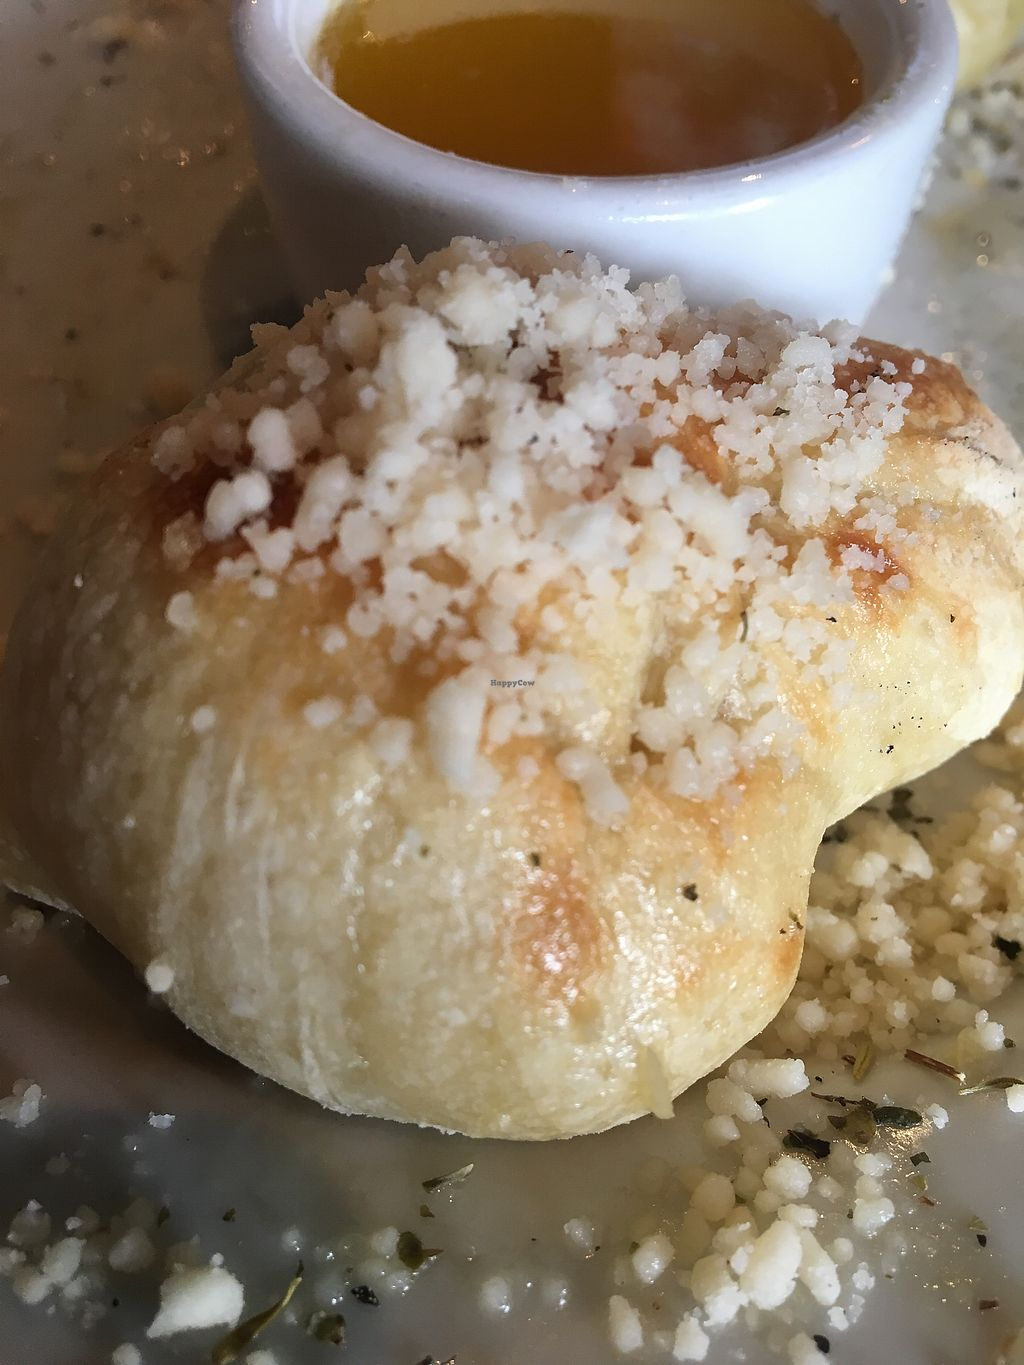 """Photo of Ethos Vegan Kitchen  by <a href=""""/members/profile/LilMsVegan"""">LilMsVegan</a> <br/>Up close with these garlic knot goodies!!  <br/> February 14, 2018  - <a href='/contact/abuse/image/12683/359238'>Report</a>"""